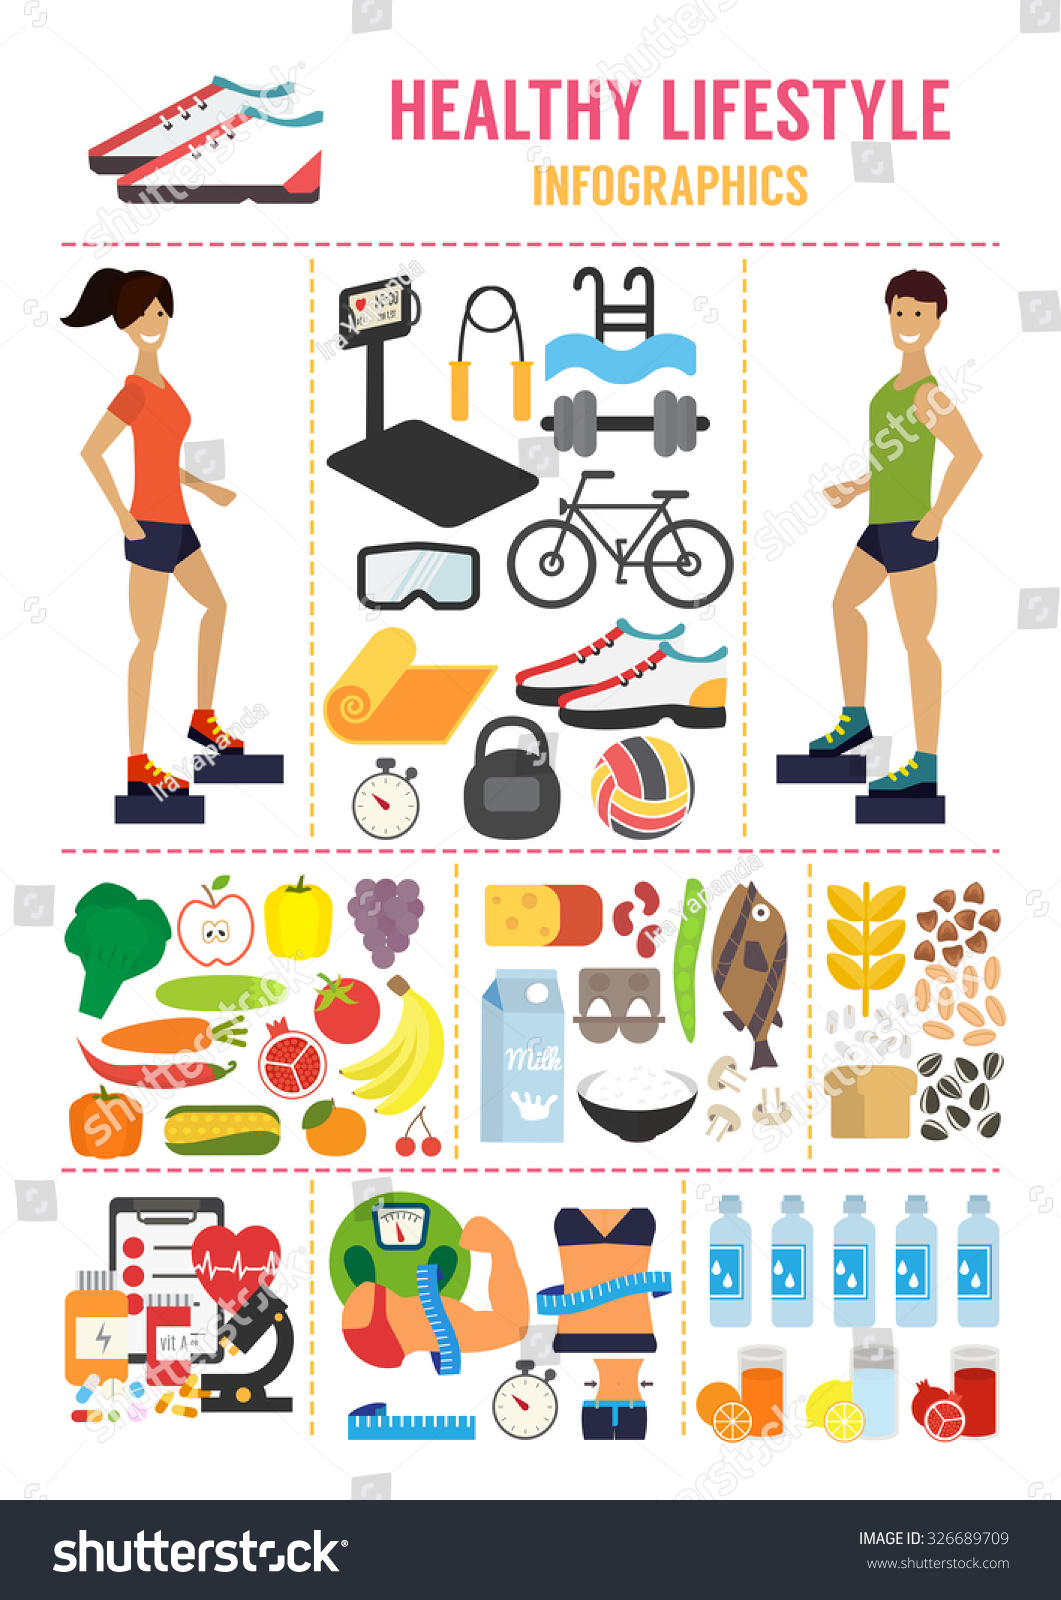 Healthy Lifestyle Infographic Fitness Food Active Stock